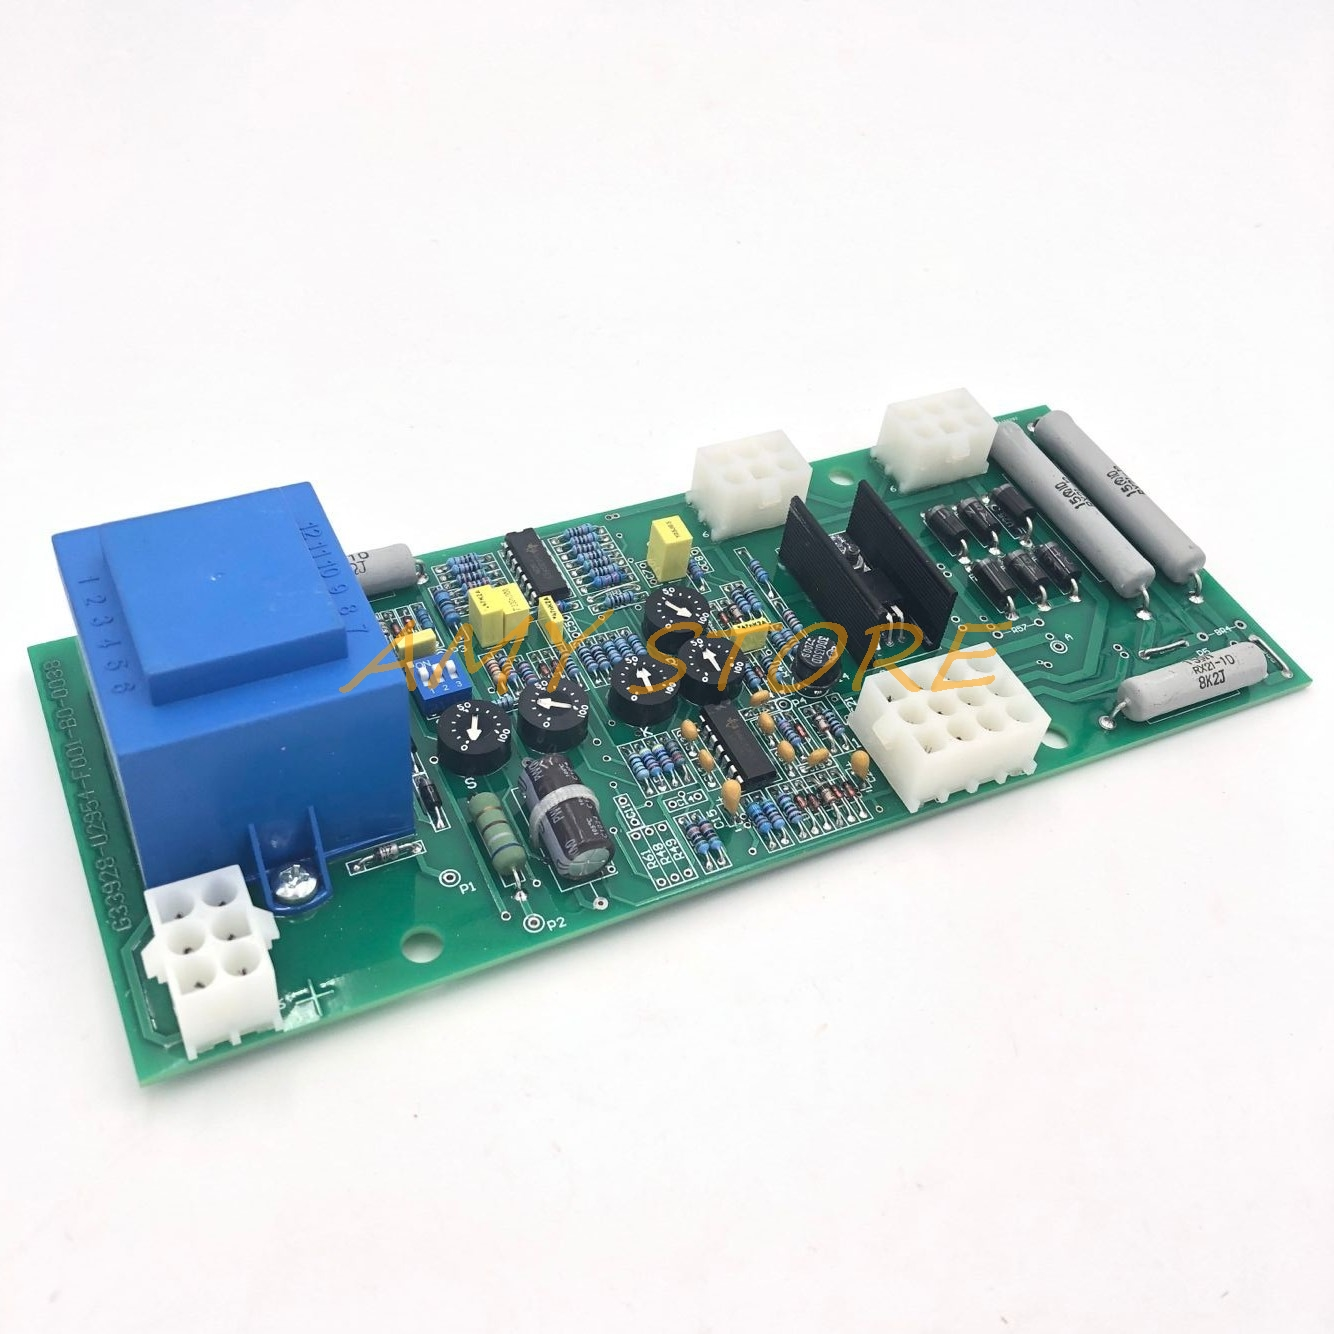 Electric Generator Automatic Voltage Regulator AVR Controller 6GA2 491-1A Card For SiemensElectric Generator Automatic Voltage Regulator AVR Controller 6GA2 491-1A Card For Siemens